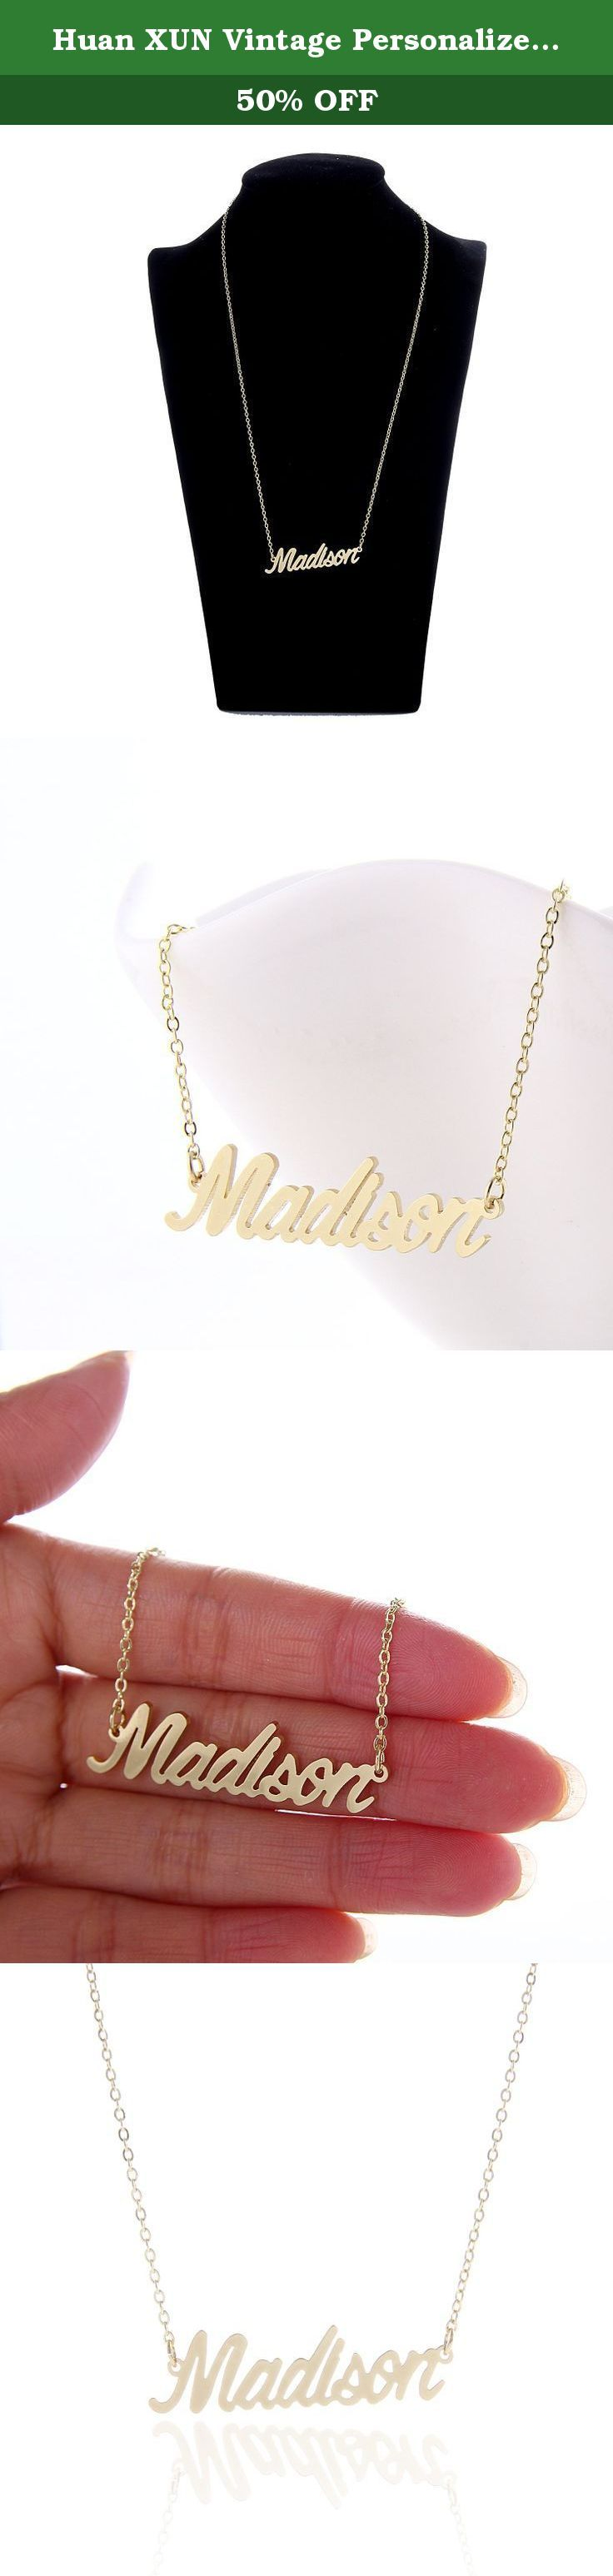 Huan XUN Vintage Personalized Calligraphy Name Necklaces Jewelry, Madison. 1.Material: stainless steel, 14 K gold plated . 2.Size: chain length=40.64cm=16inches, extention chain=5.08cm=2inches. 3.Standard shipping: 10-25 business days to US, 15-35 business days to other countries. 4.Expedited Shipping: 4-7 business days to US, 5-10 business days to other countries. .